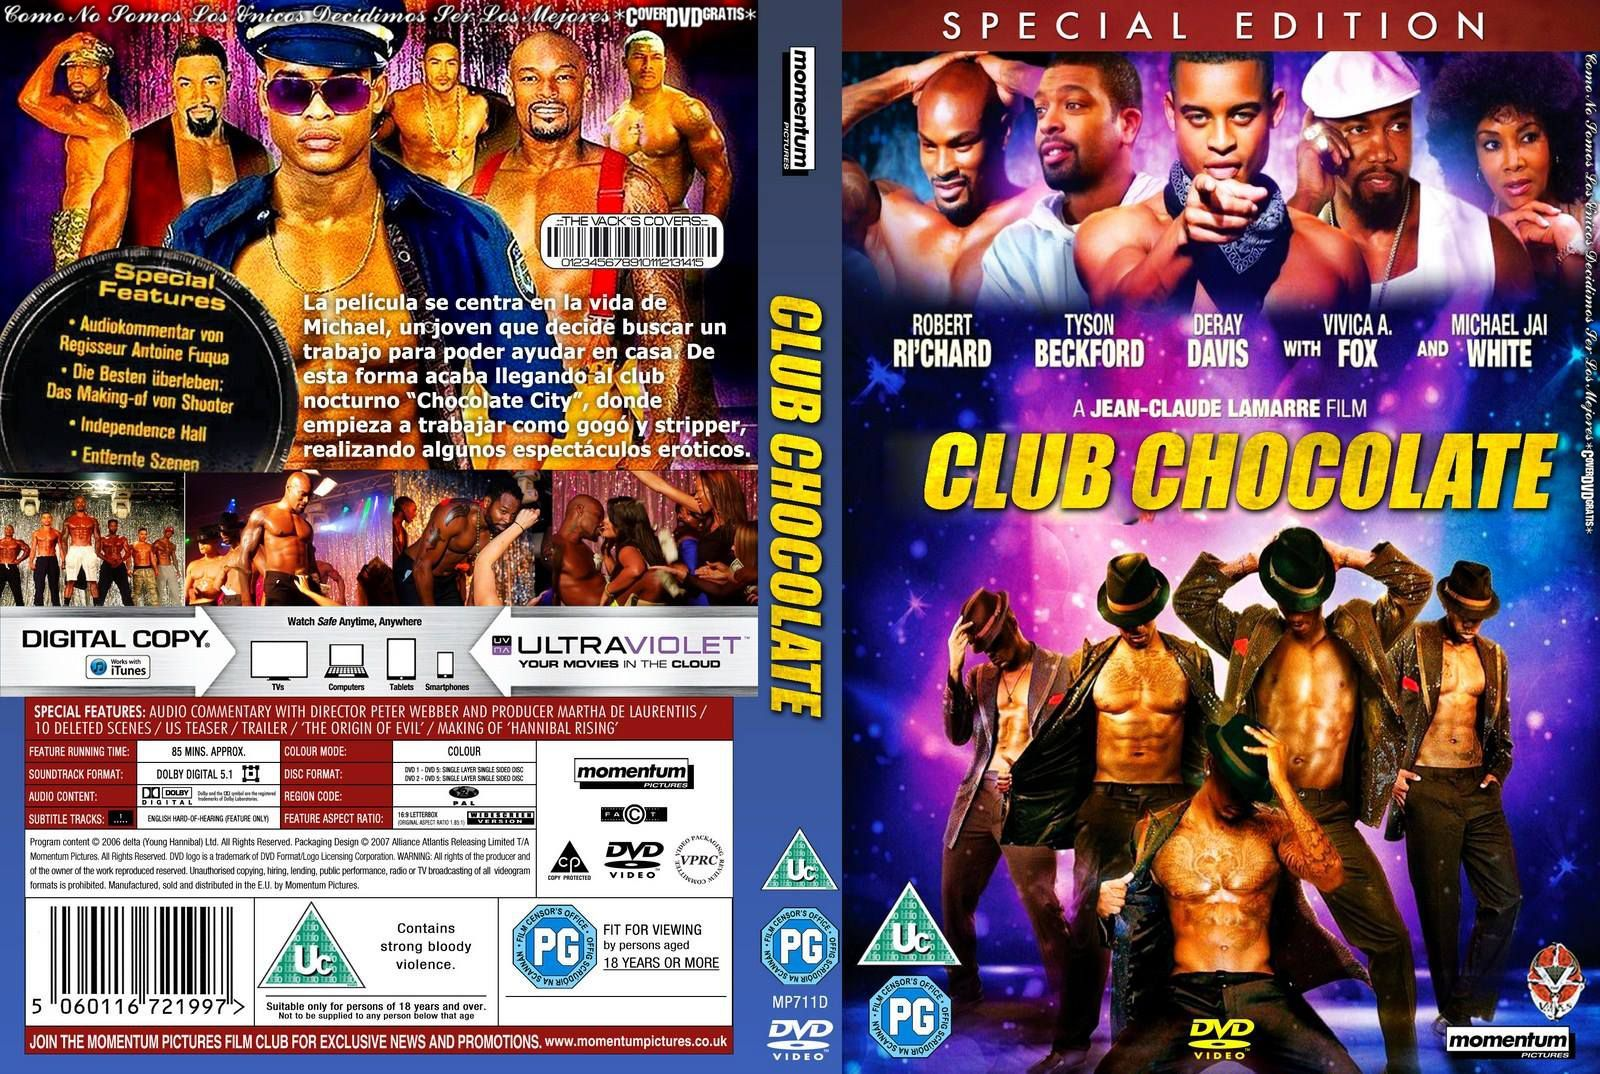 Chocolate City 2015 DVD COVER - CoverDVDgratis !!! | dvd covers ...